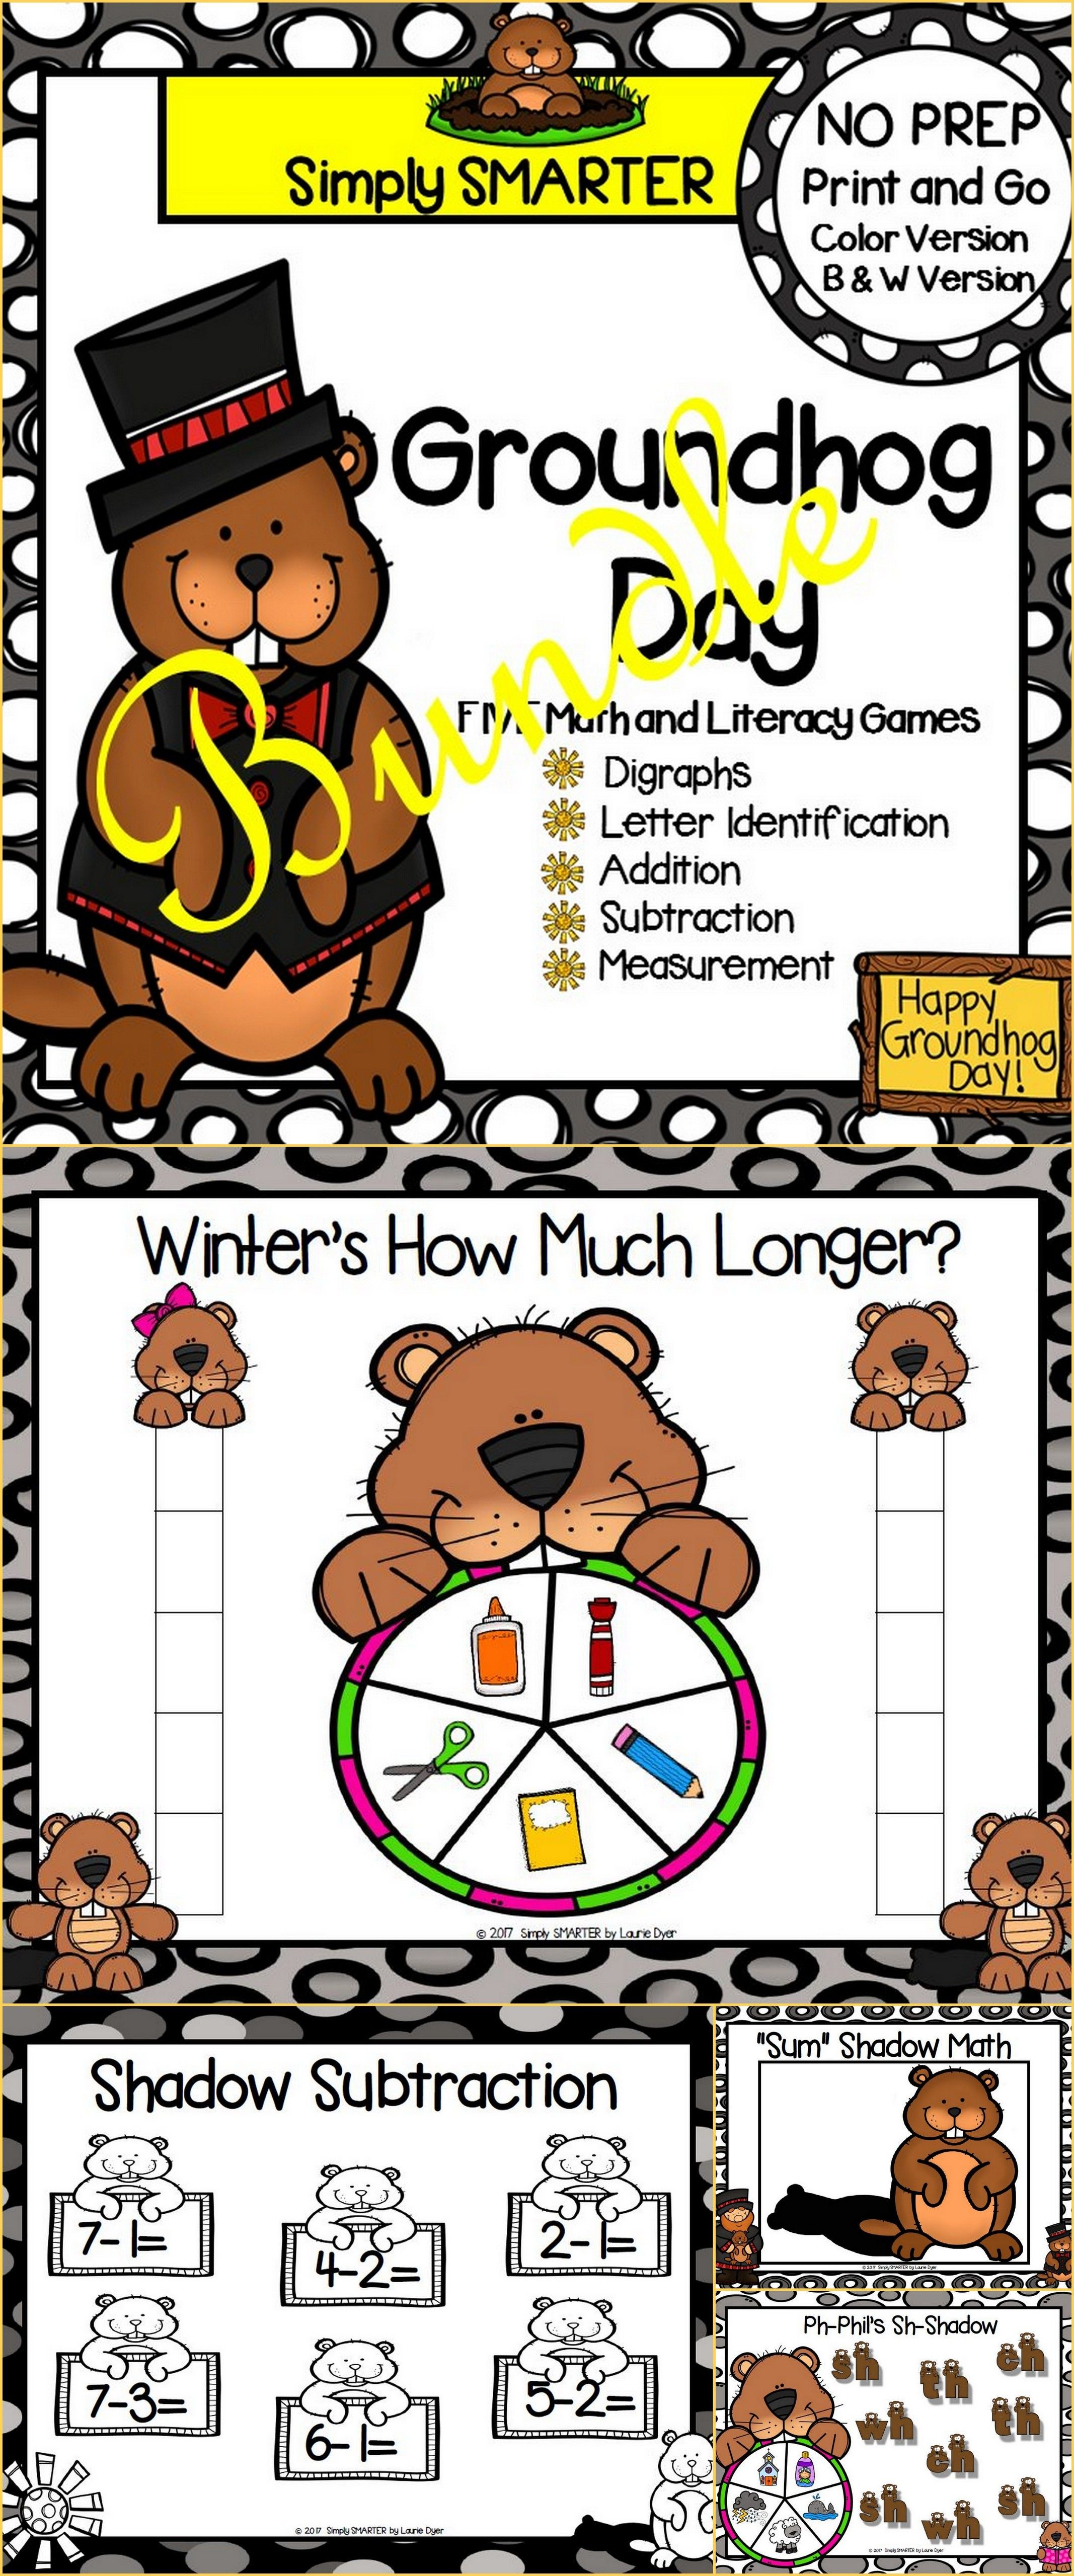 No Prep Groundhog Day Themed Math And Literacy Games